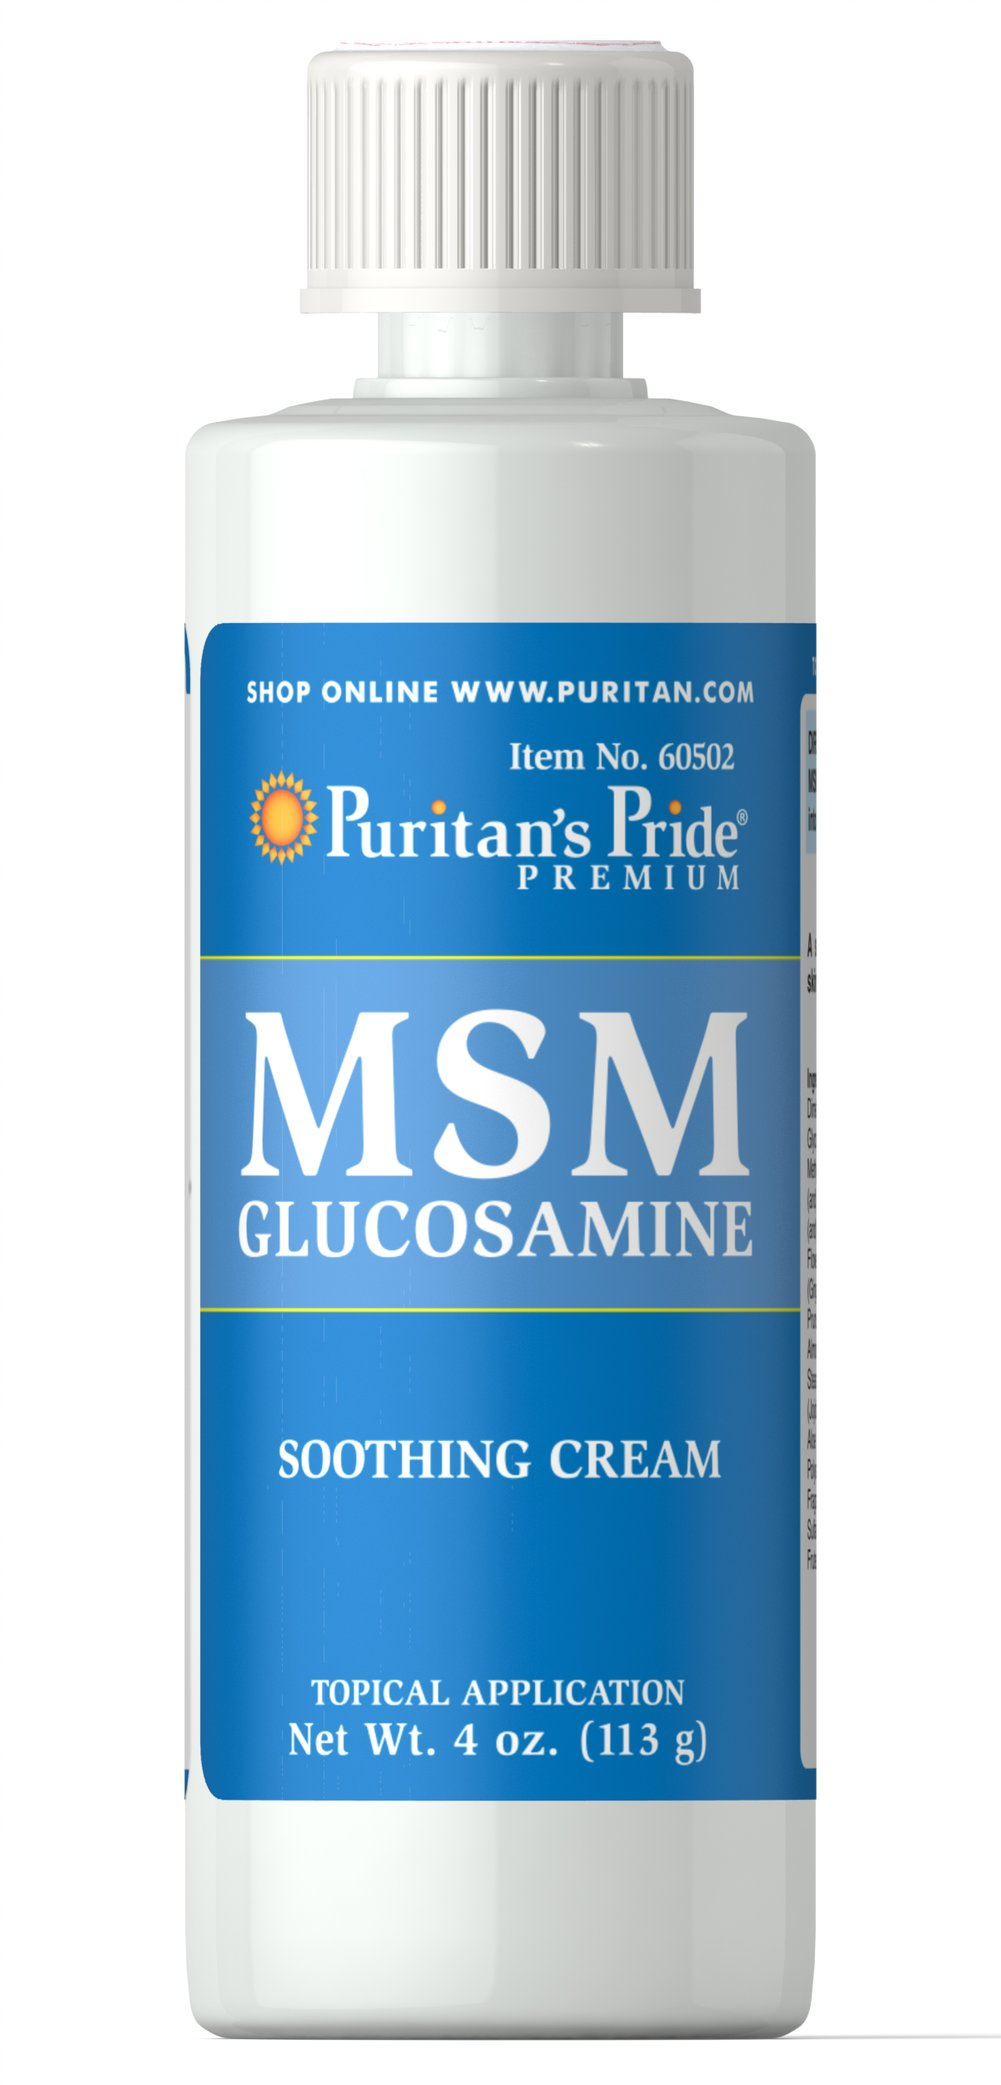 MSM Glucosamine Cream <p>A soothing cream for the skin and joints.  Gently massage <strong>MSM with Glucosamine Cream</strong> into the skin as required, or follow the advice of your health care professional.</p><p></p> 4 oz Cream  $14.99